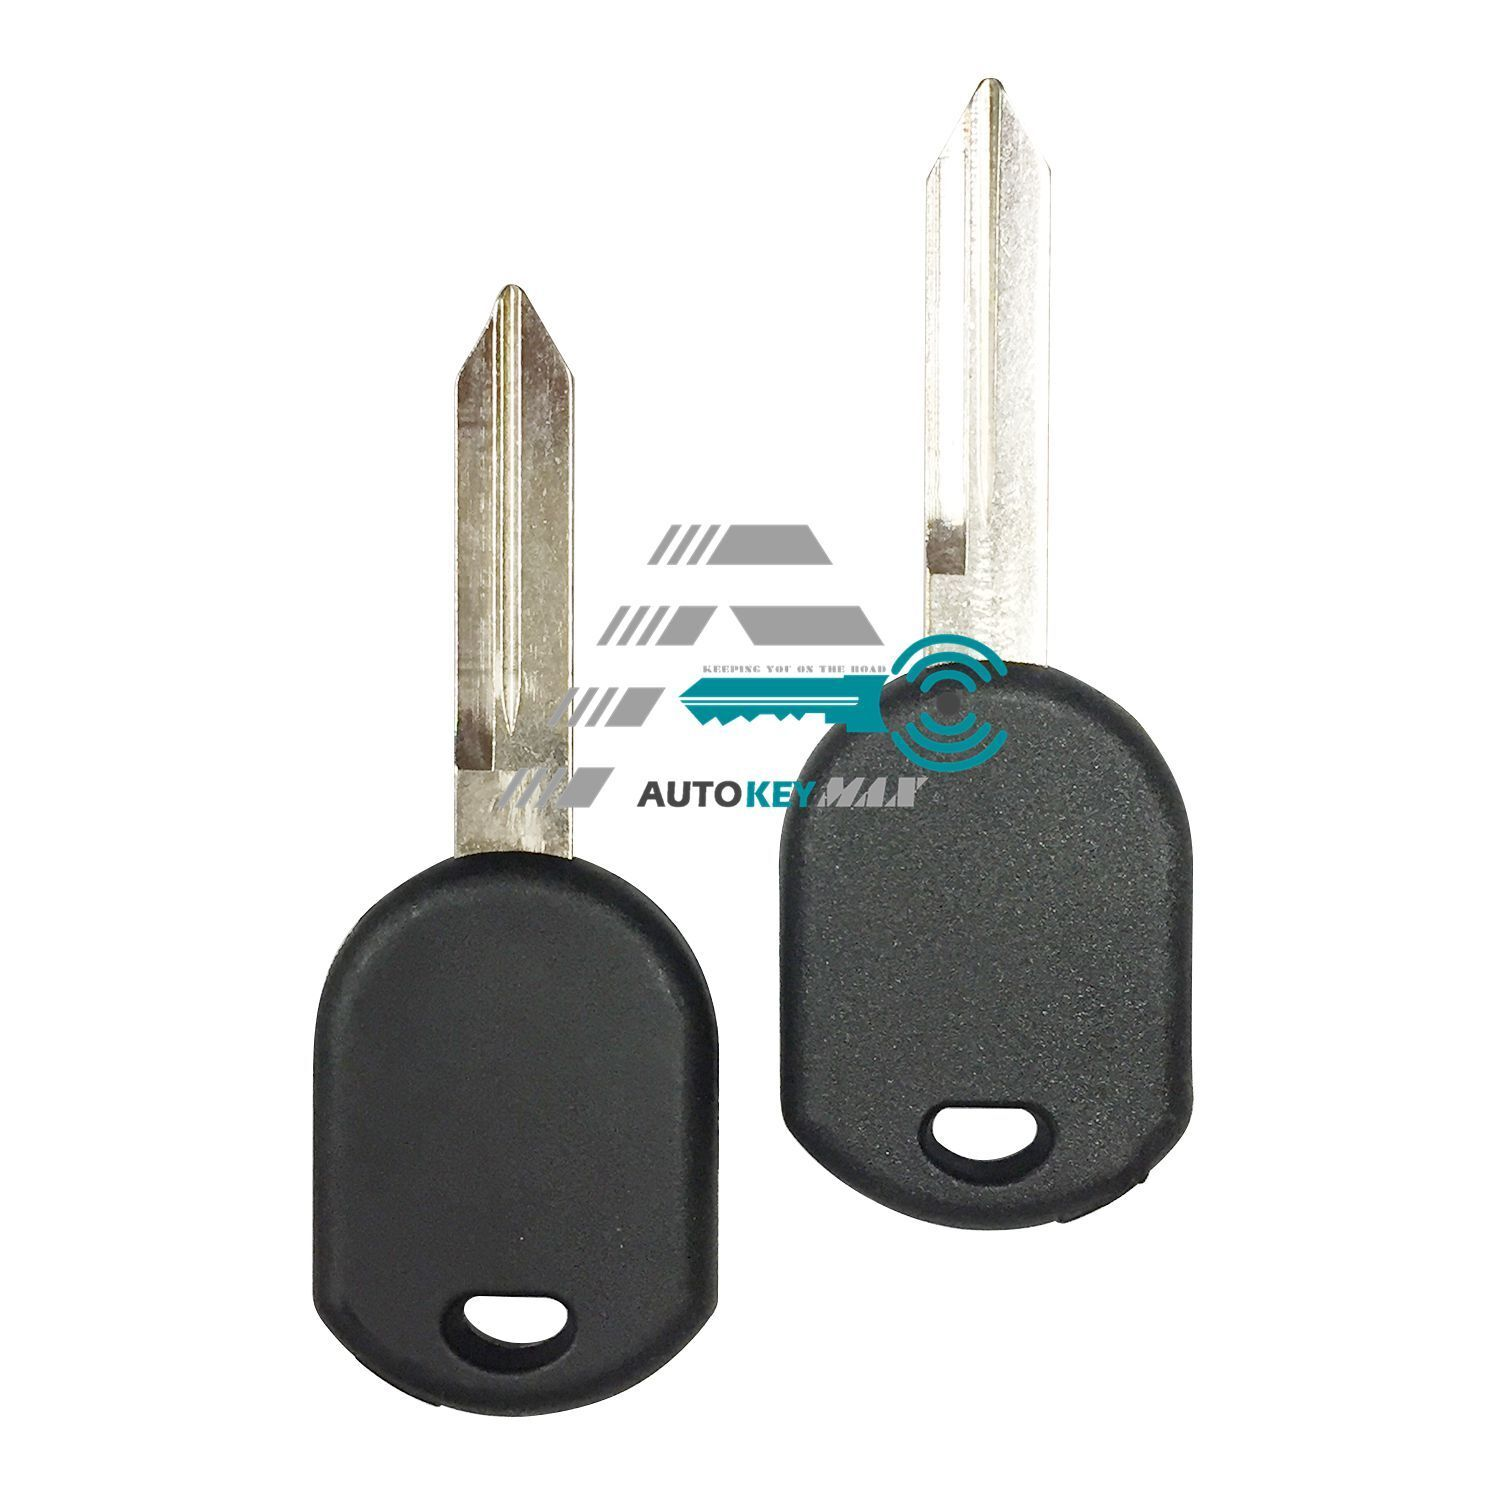 2 NEW TRANSPONDER  CHIP KEY FOR  Mercury 2007 2008 2009 2010 Mountaineer